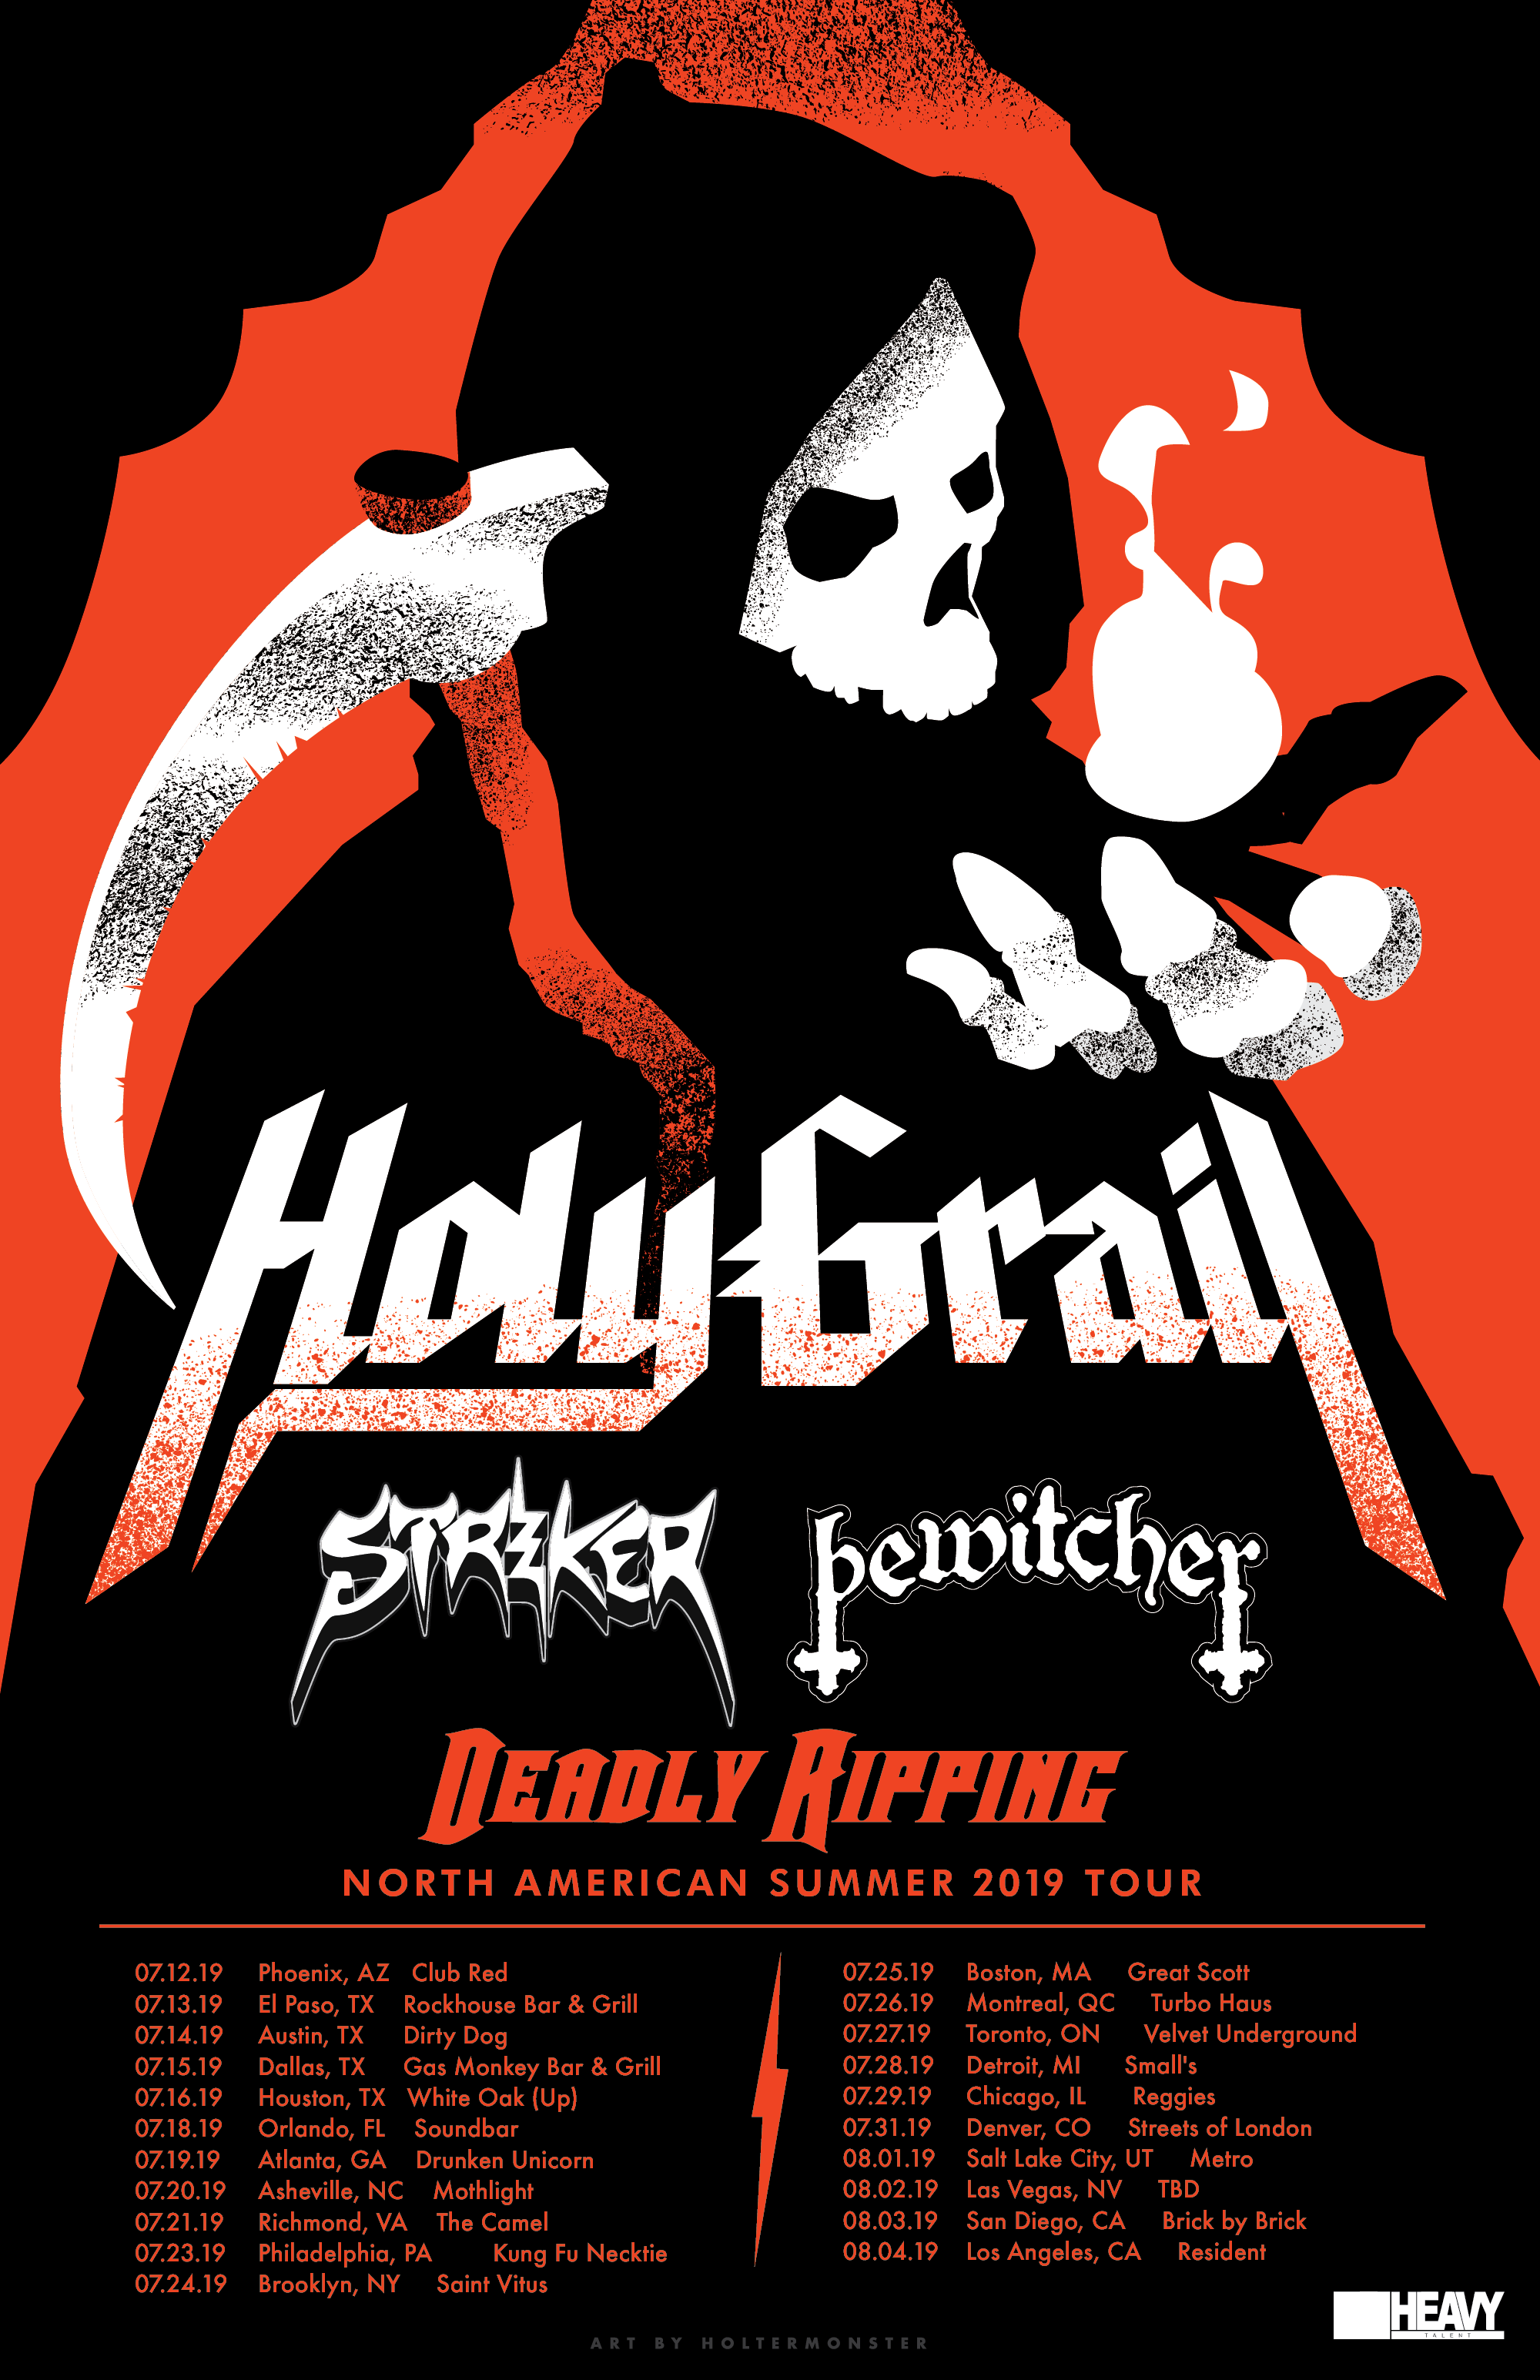 Holy Grail 2019 Deadly Ripping tour poster